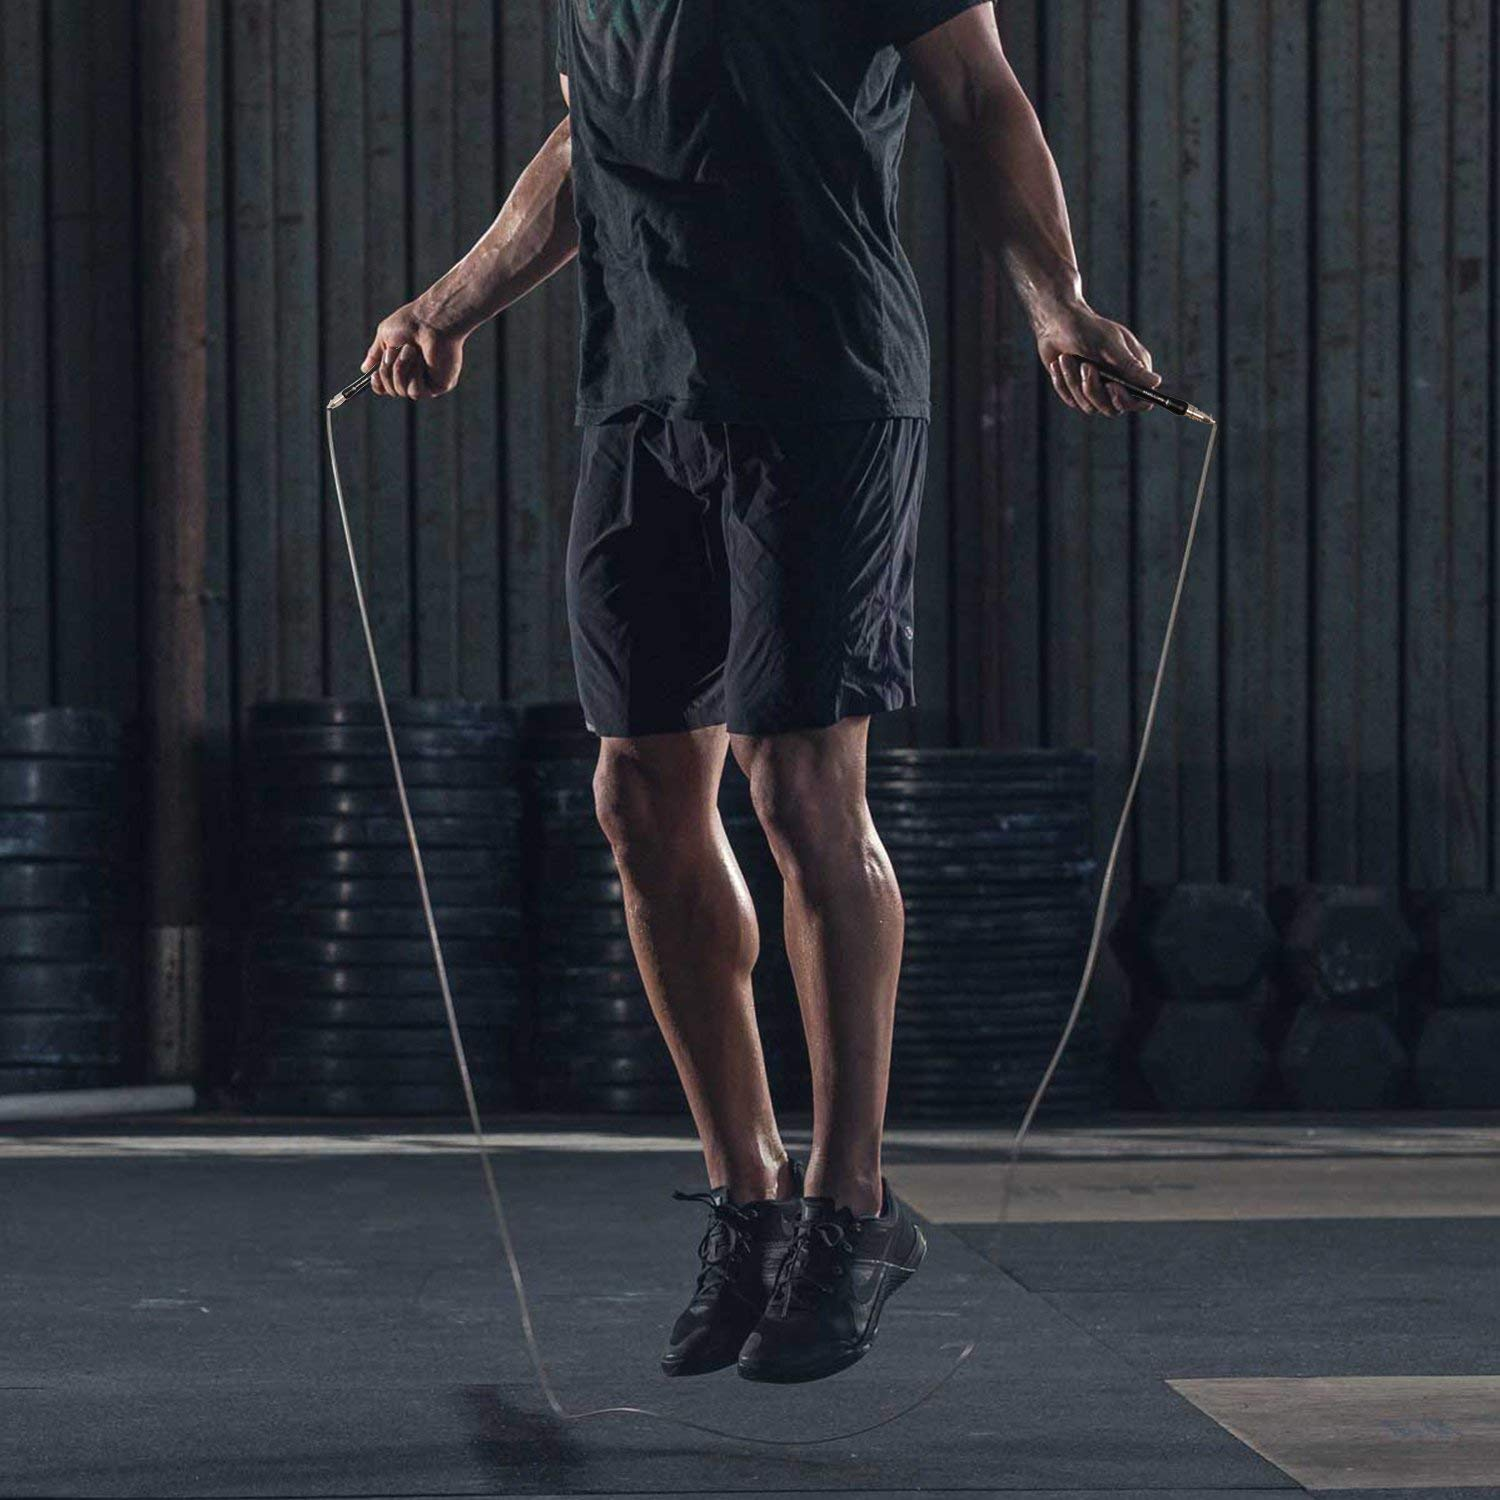 https://way4you.com.ua/images/upload/skakalka-jump-rope-way4you.jpg